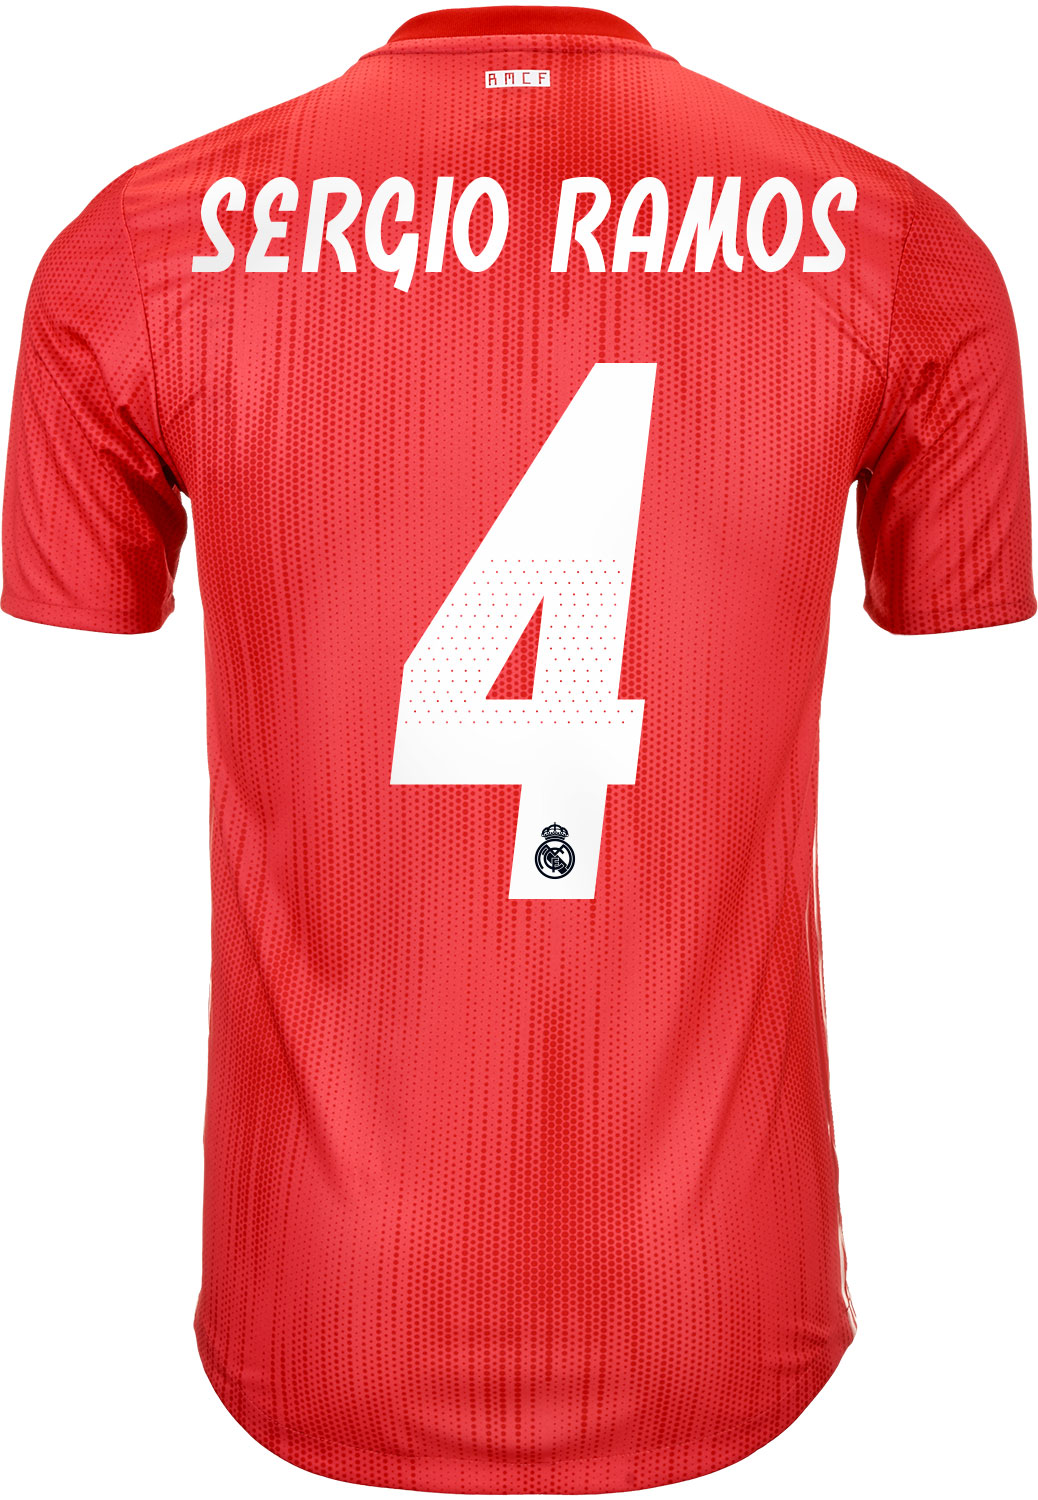 online store 35203 dd696 2018/19 adidas Sergio Ramos Real Madrid Authentic 3rd Jersey ...